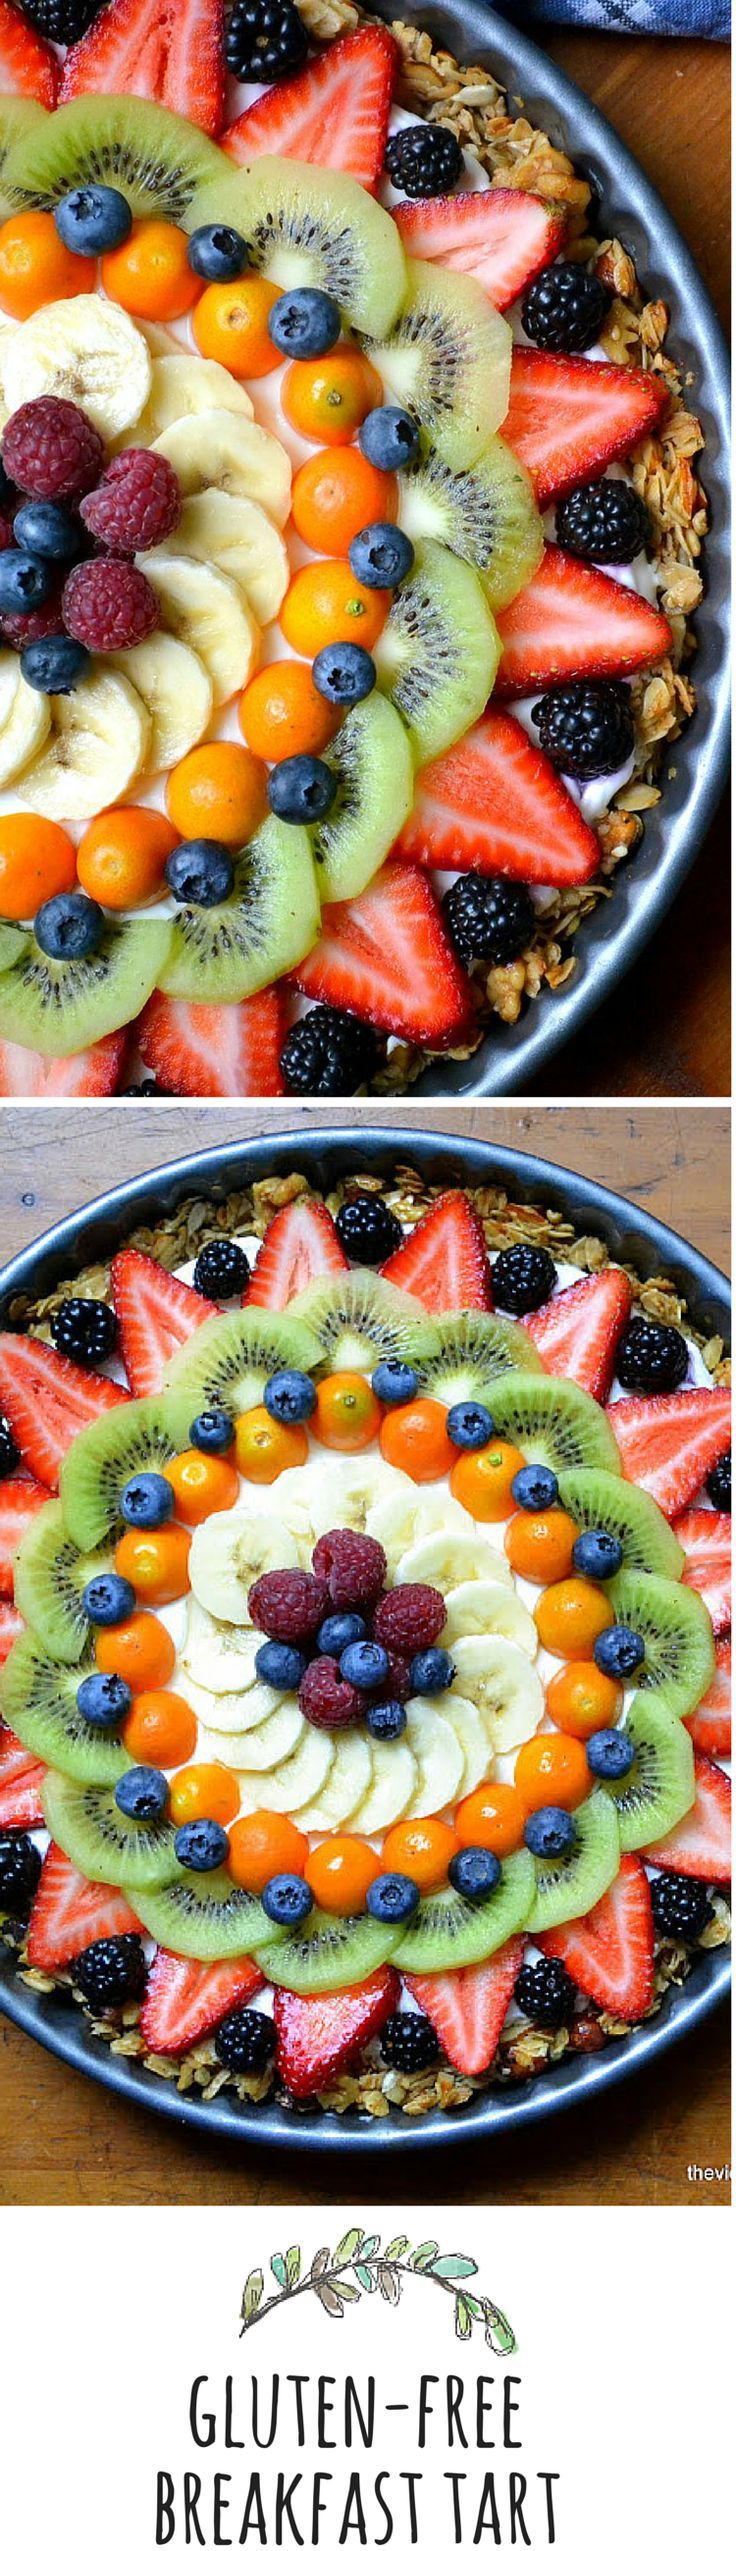 Healthy and gluten free, this fruit and yogurt tart is a winner!